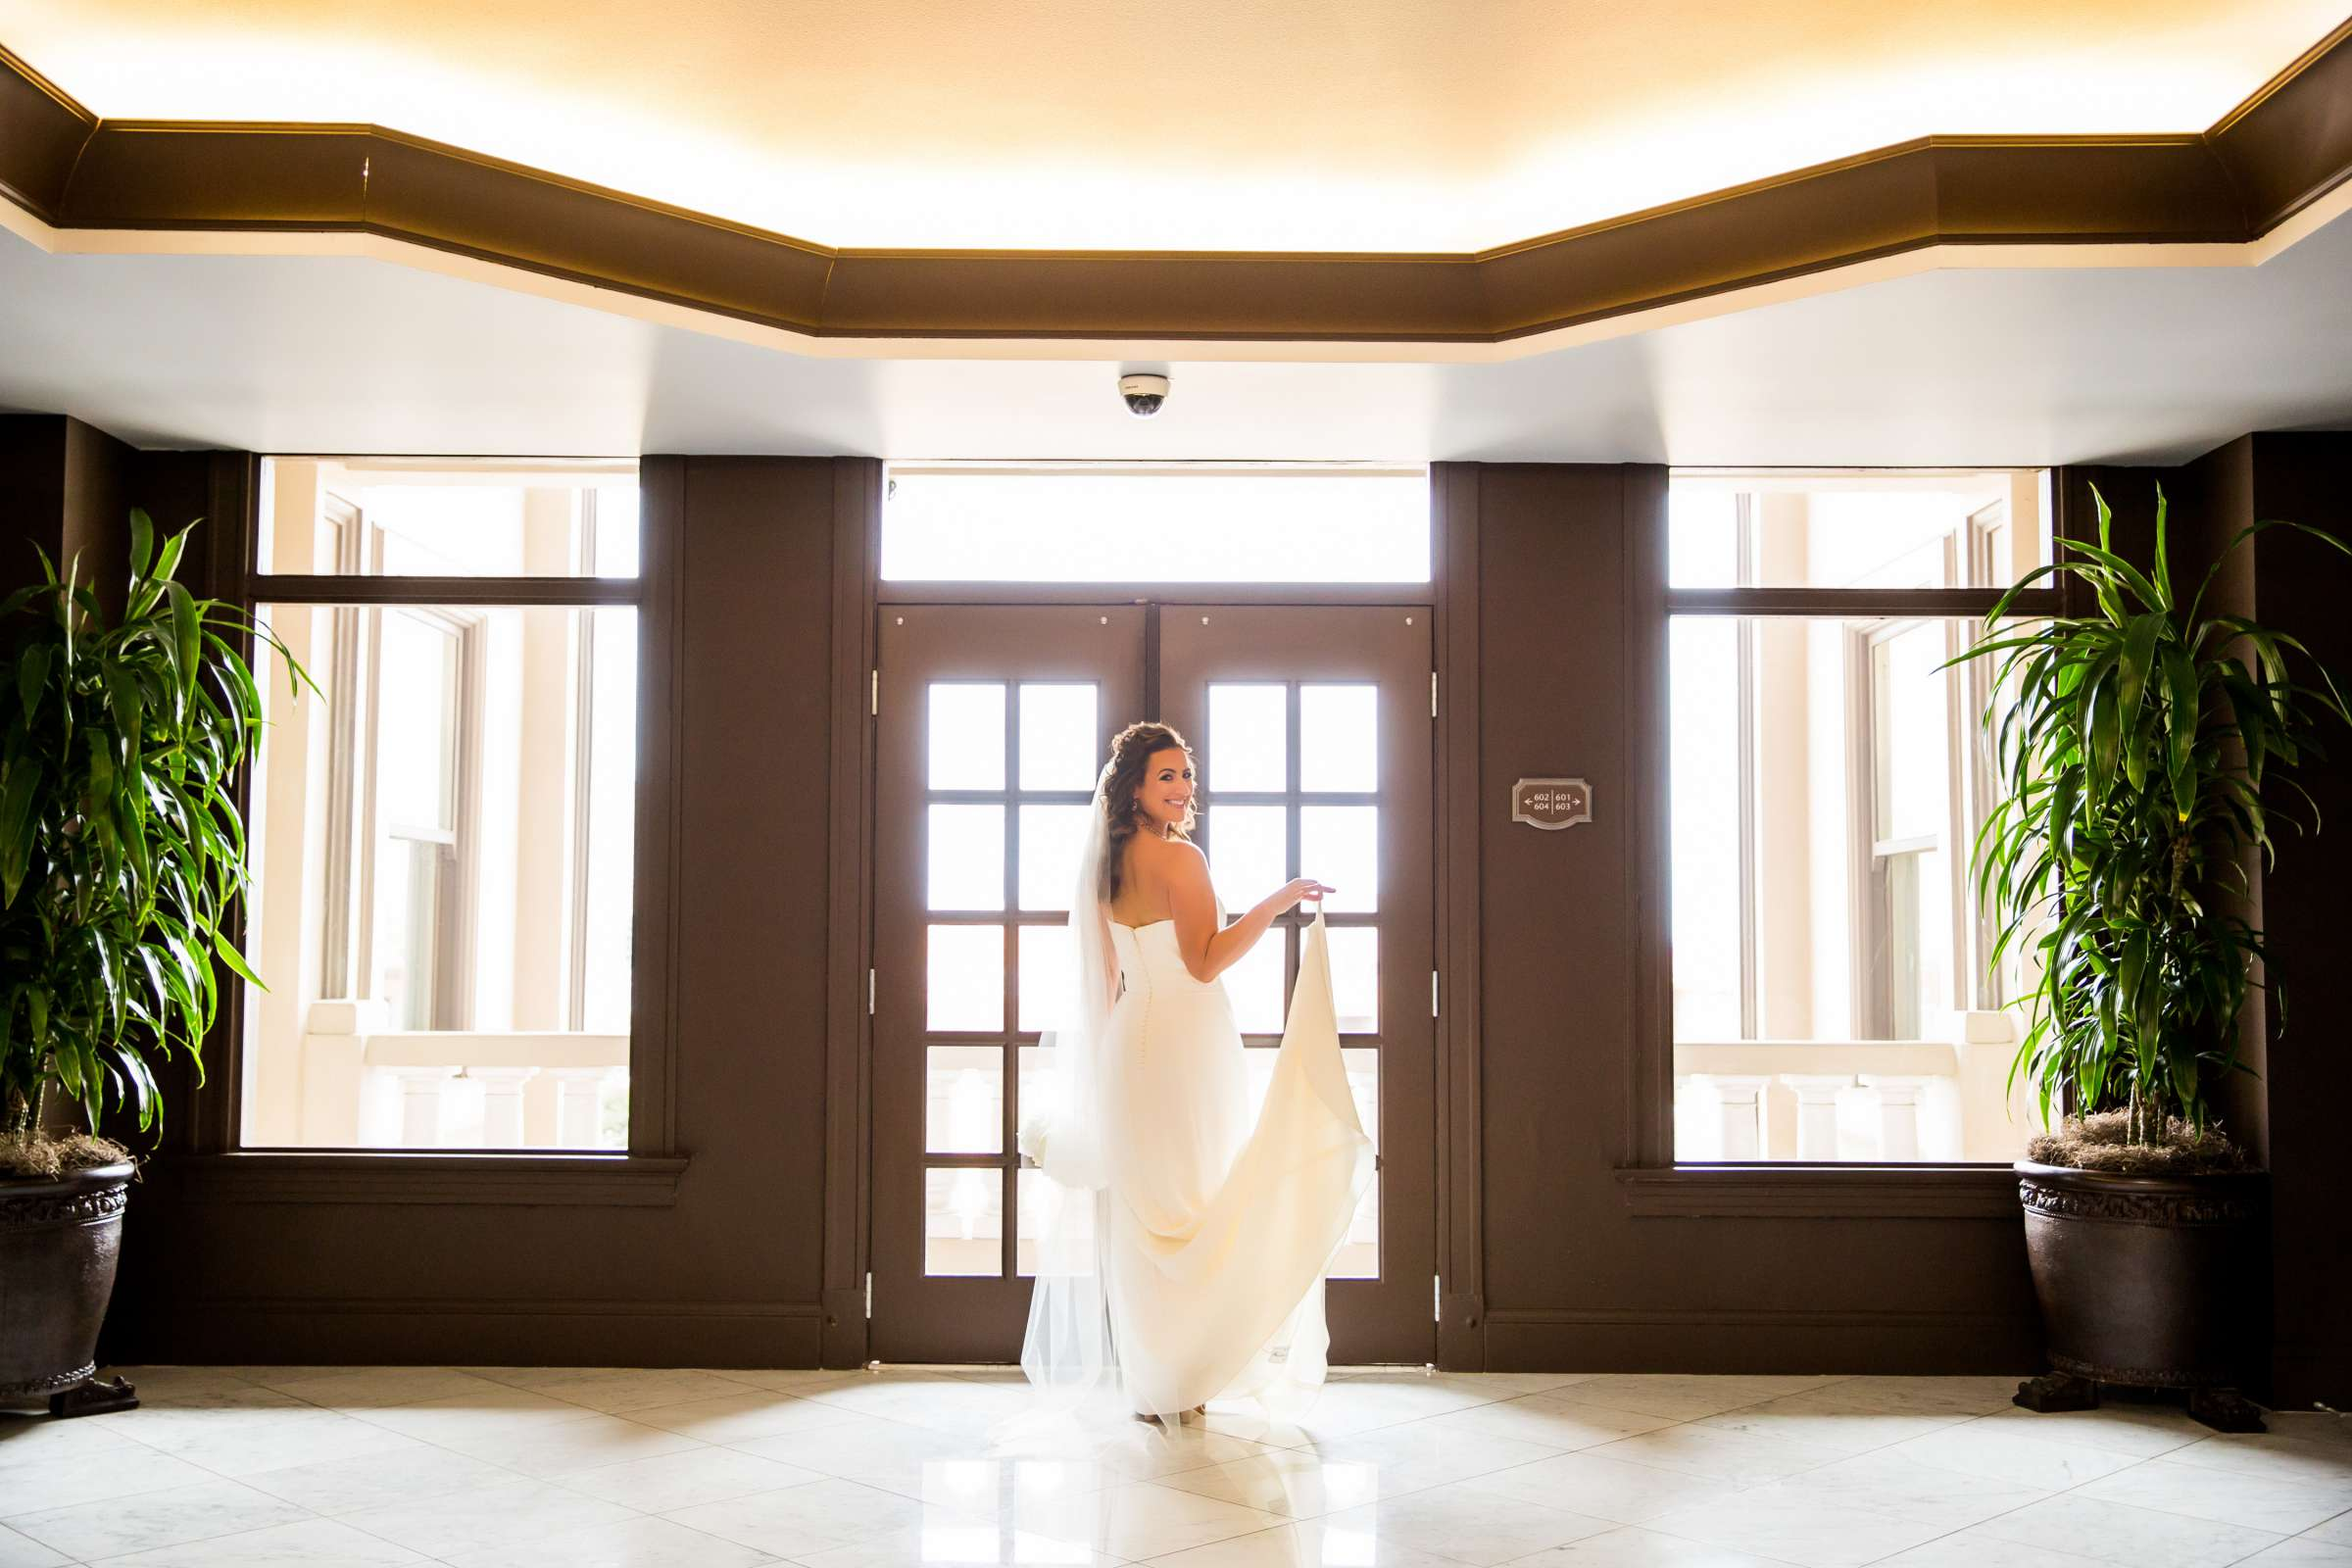 San Diego Museum of Art Wedding coordinated by First Comes Love Weddings & Events, Ruthie and Larry Wedding Photo #236790 by True Photography